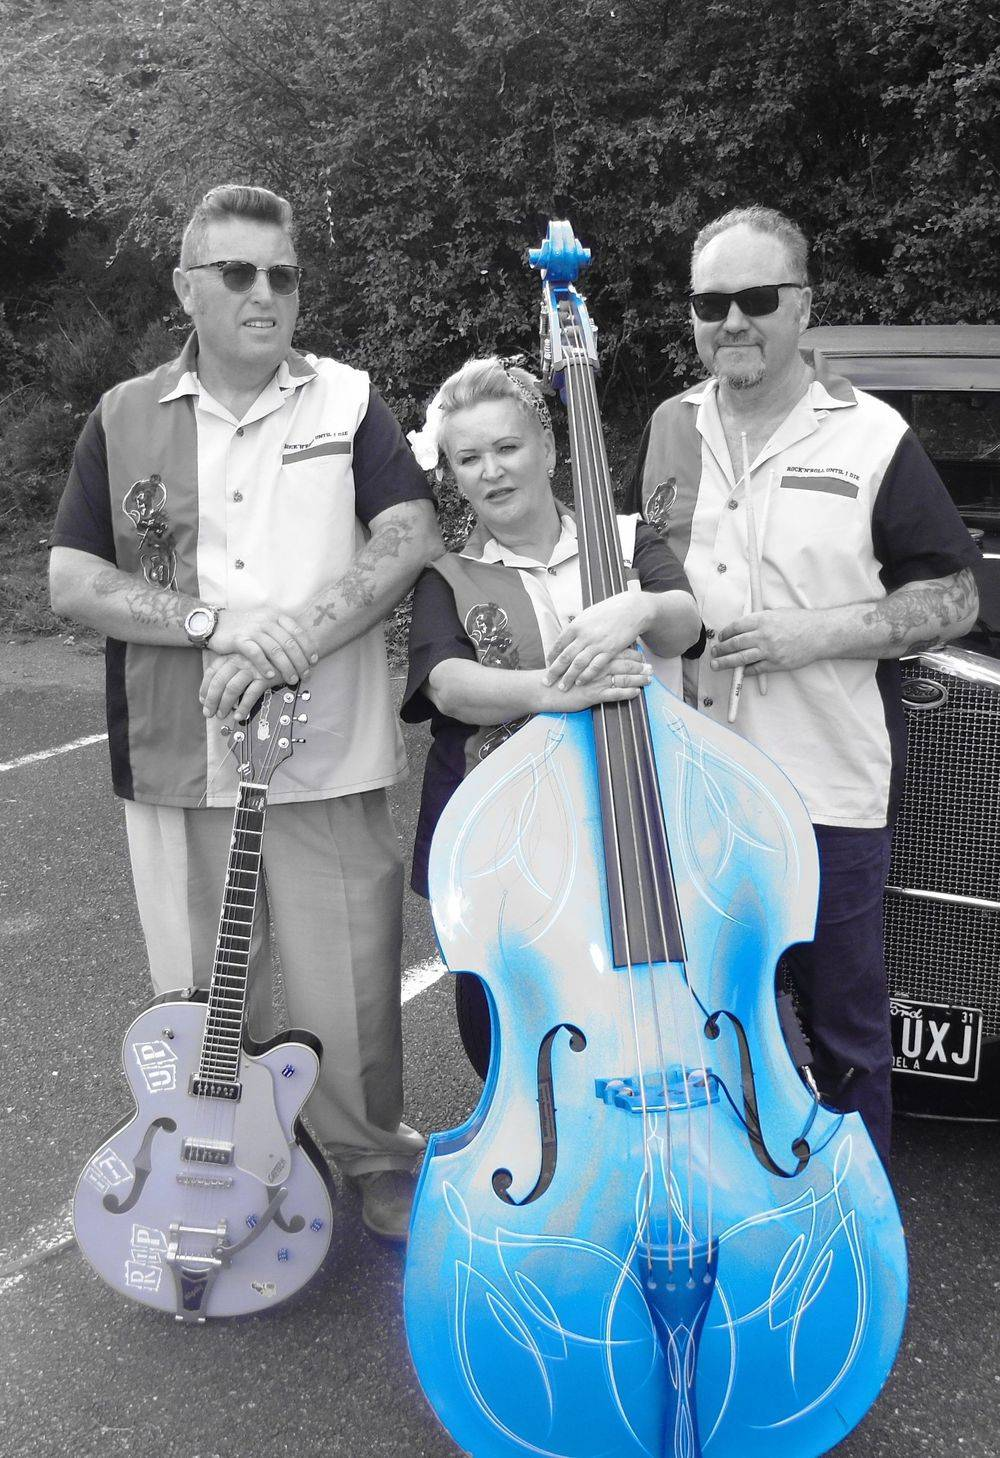 Rip It Up Rock and Roll, Rockabilly Band About Us